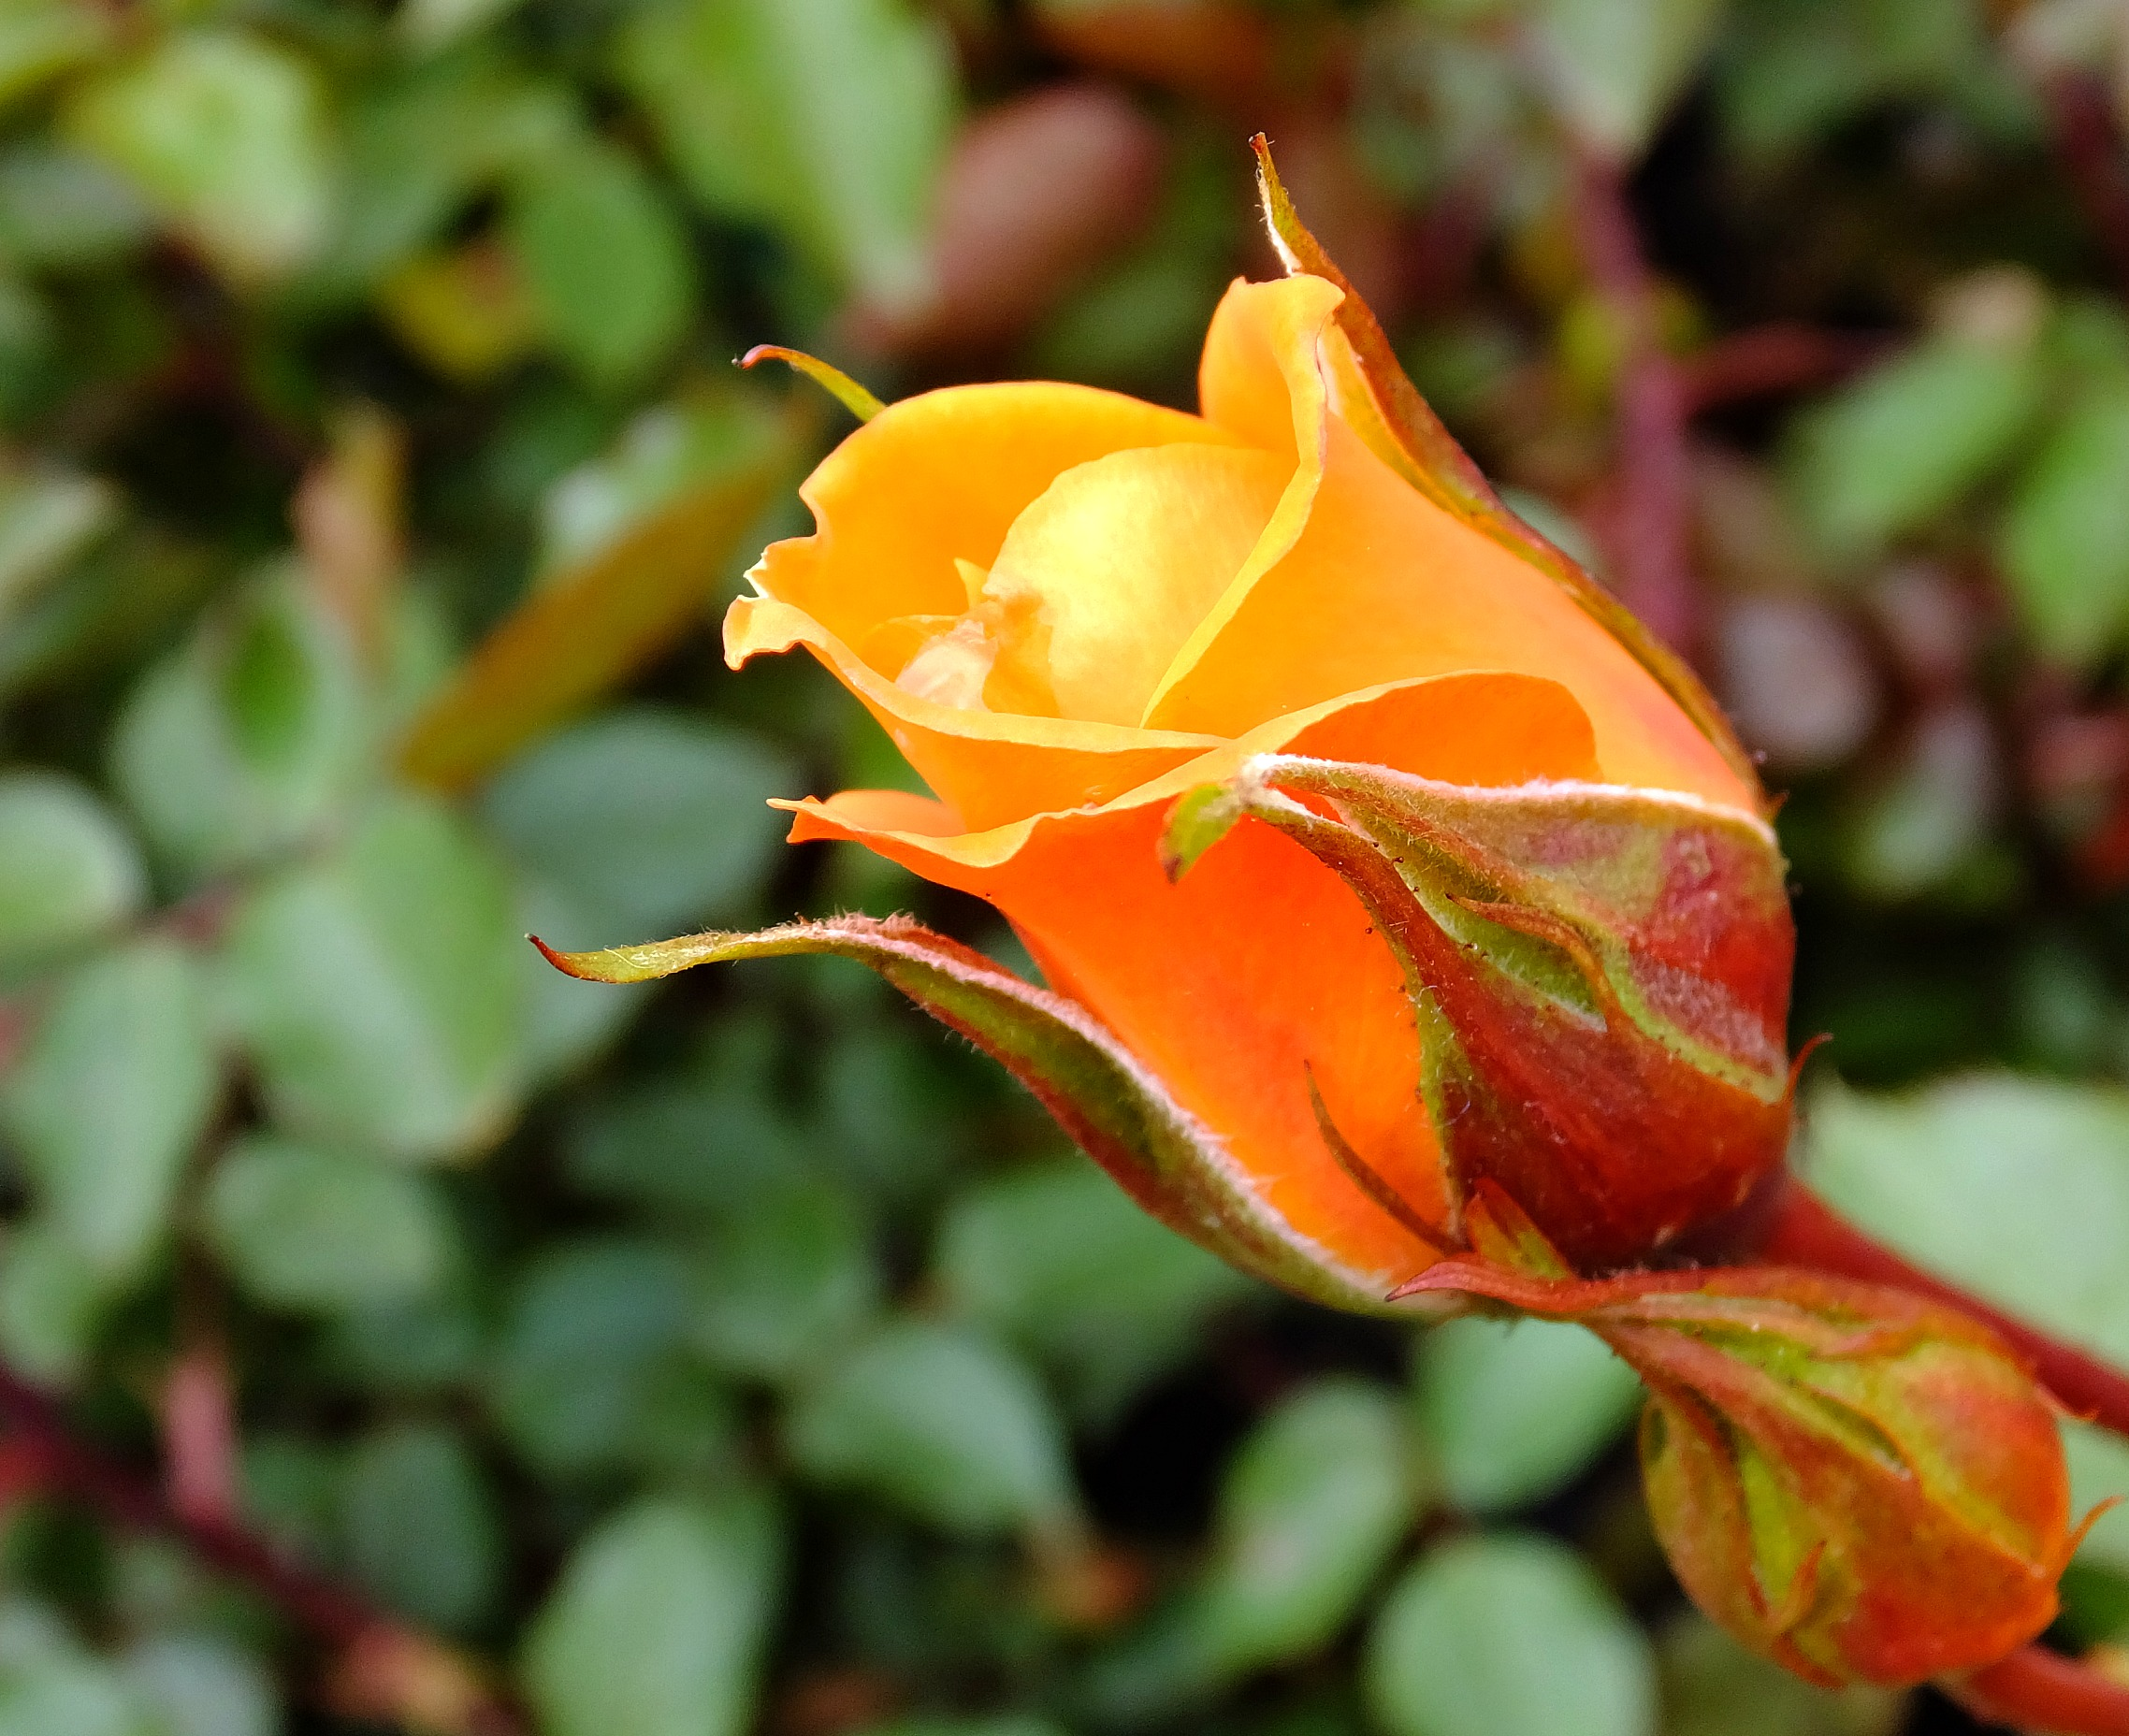 Close Photography Of Red And Pink Rose 183 Free Stock Photo